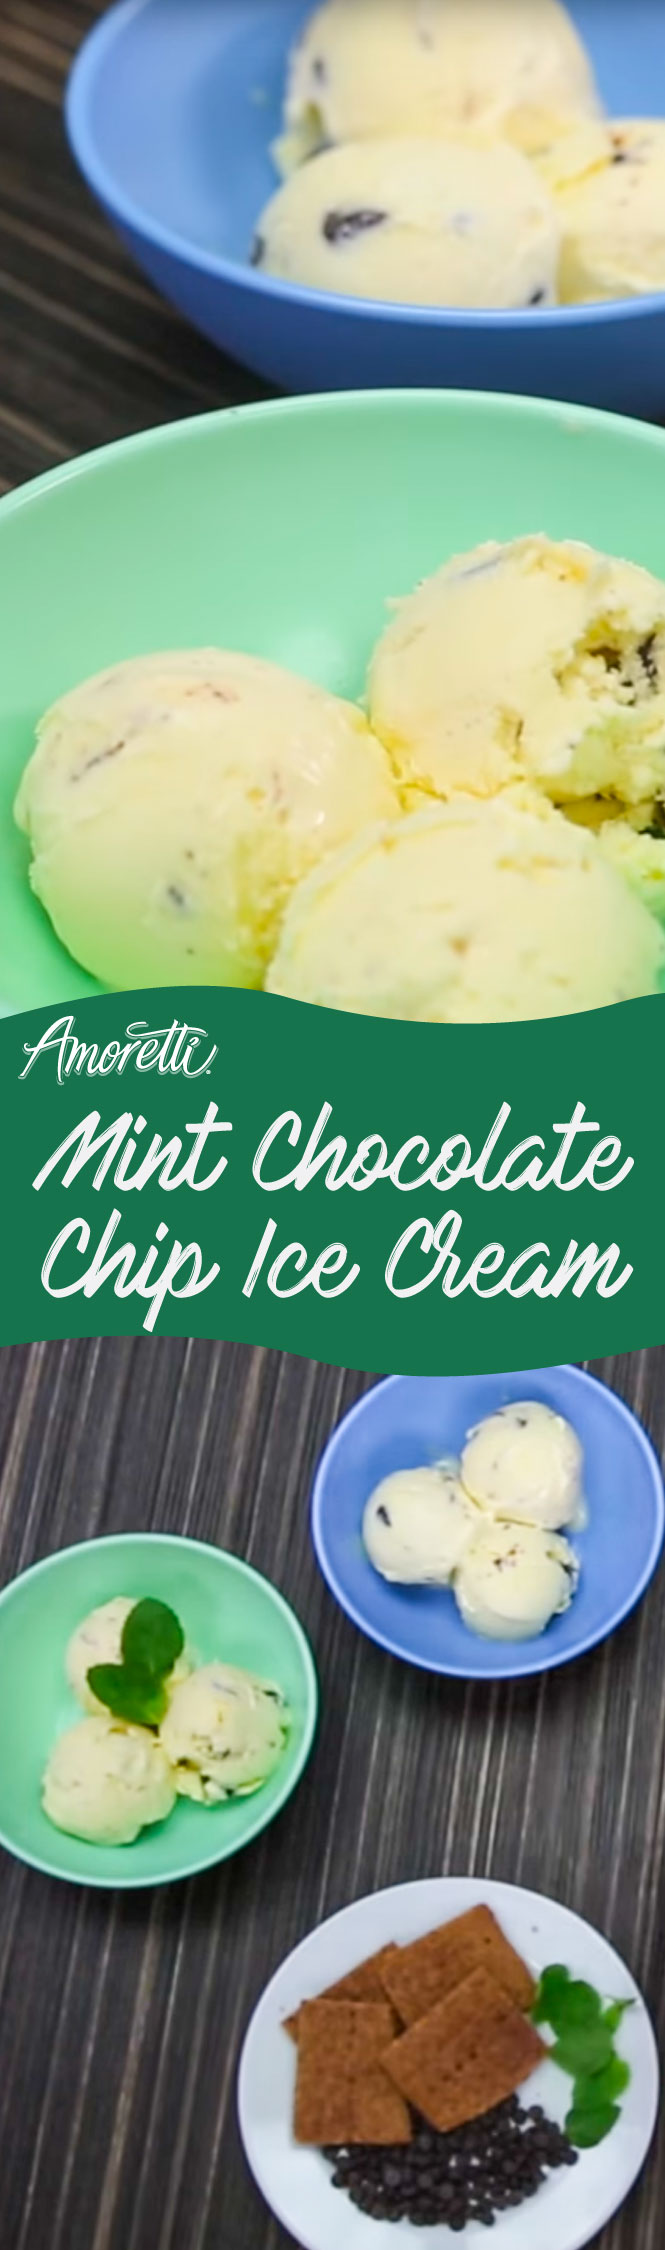 Enjoy this refreshing ice cream packed with chocolate and fresh minty flavor!